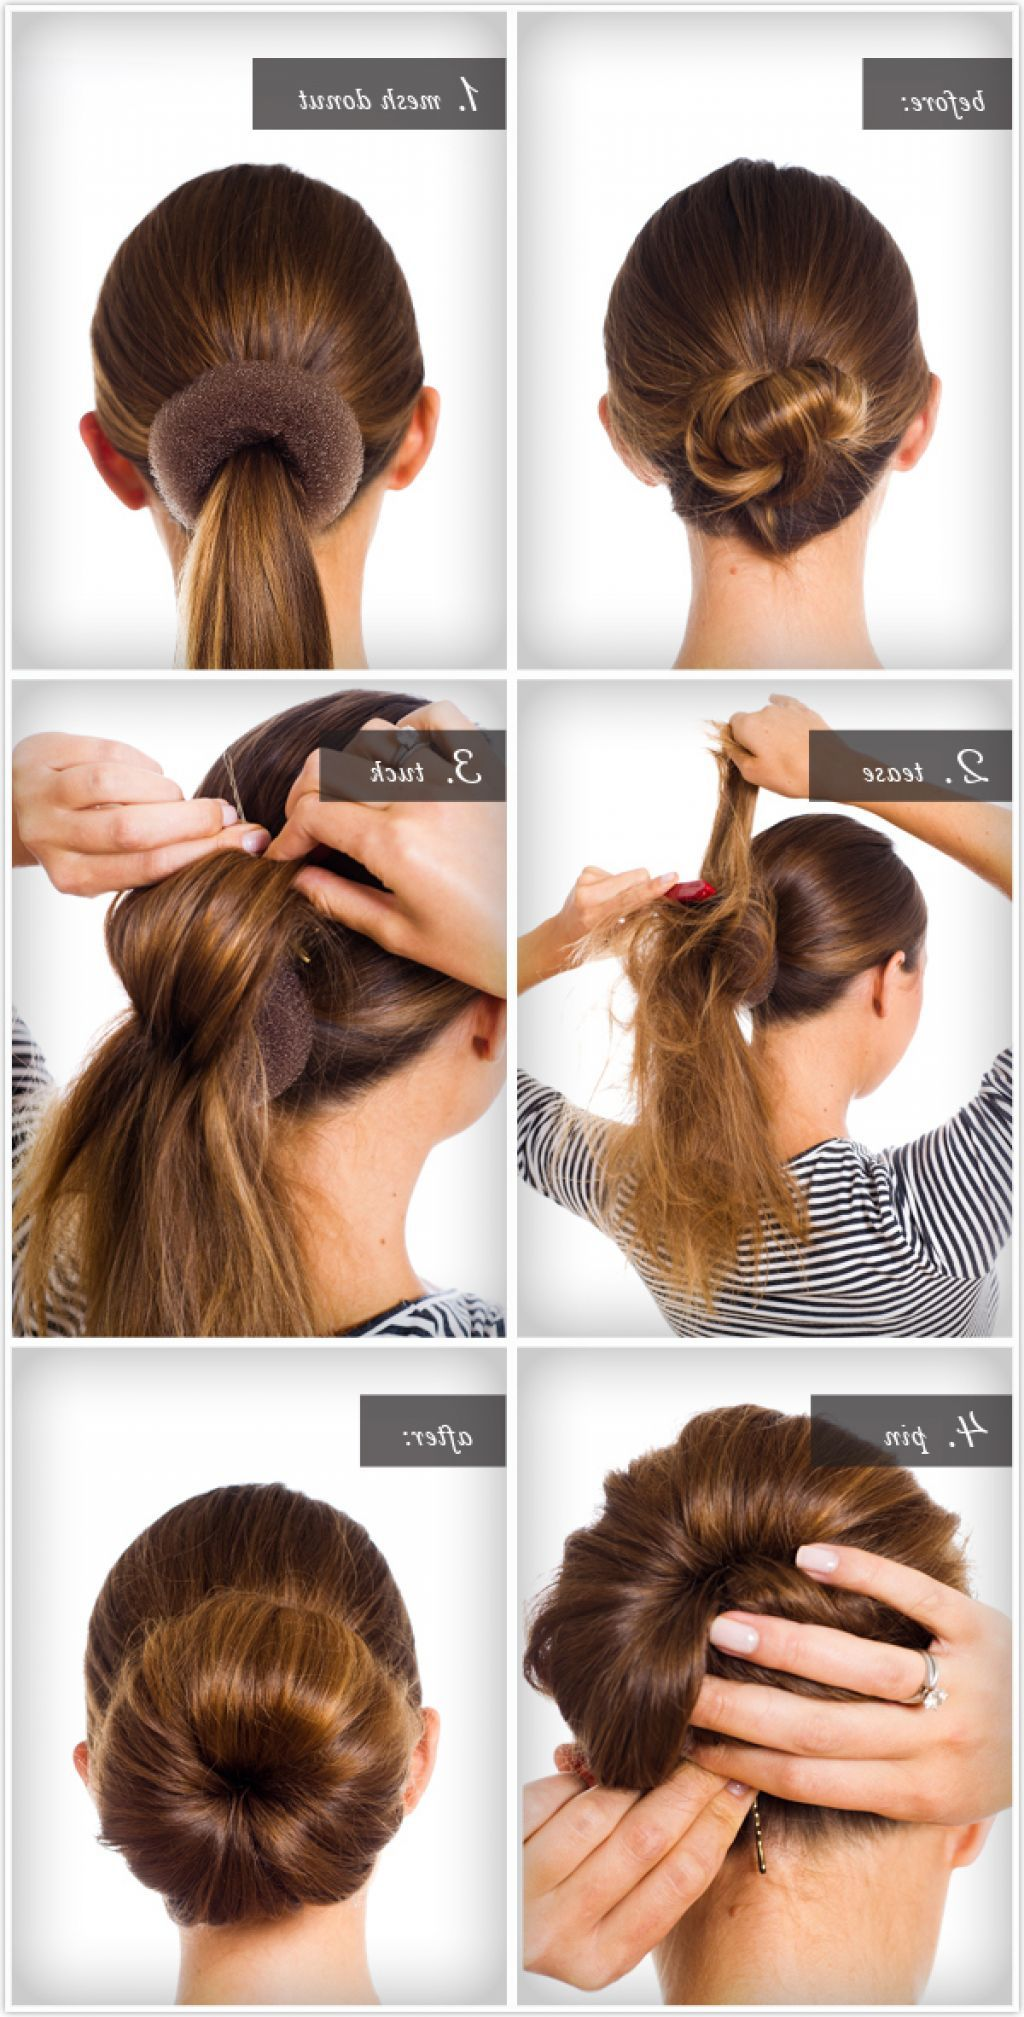 new-hairstyle-2015-step-by-step | Hair donut, Hair bun maker, Hair styles